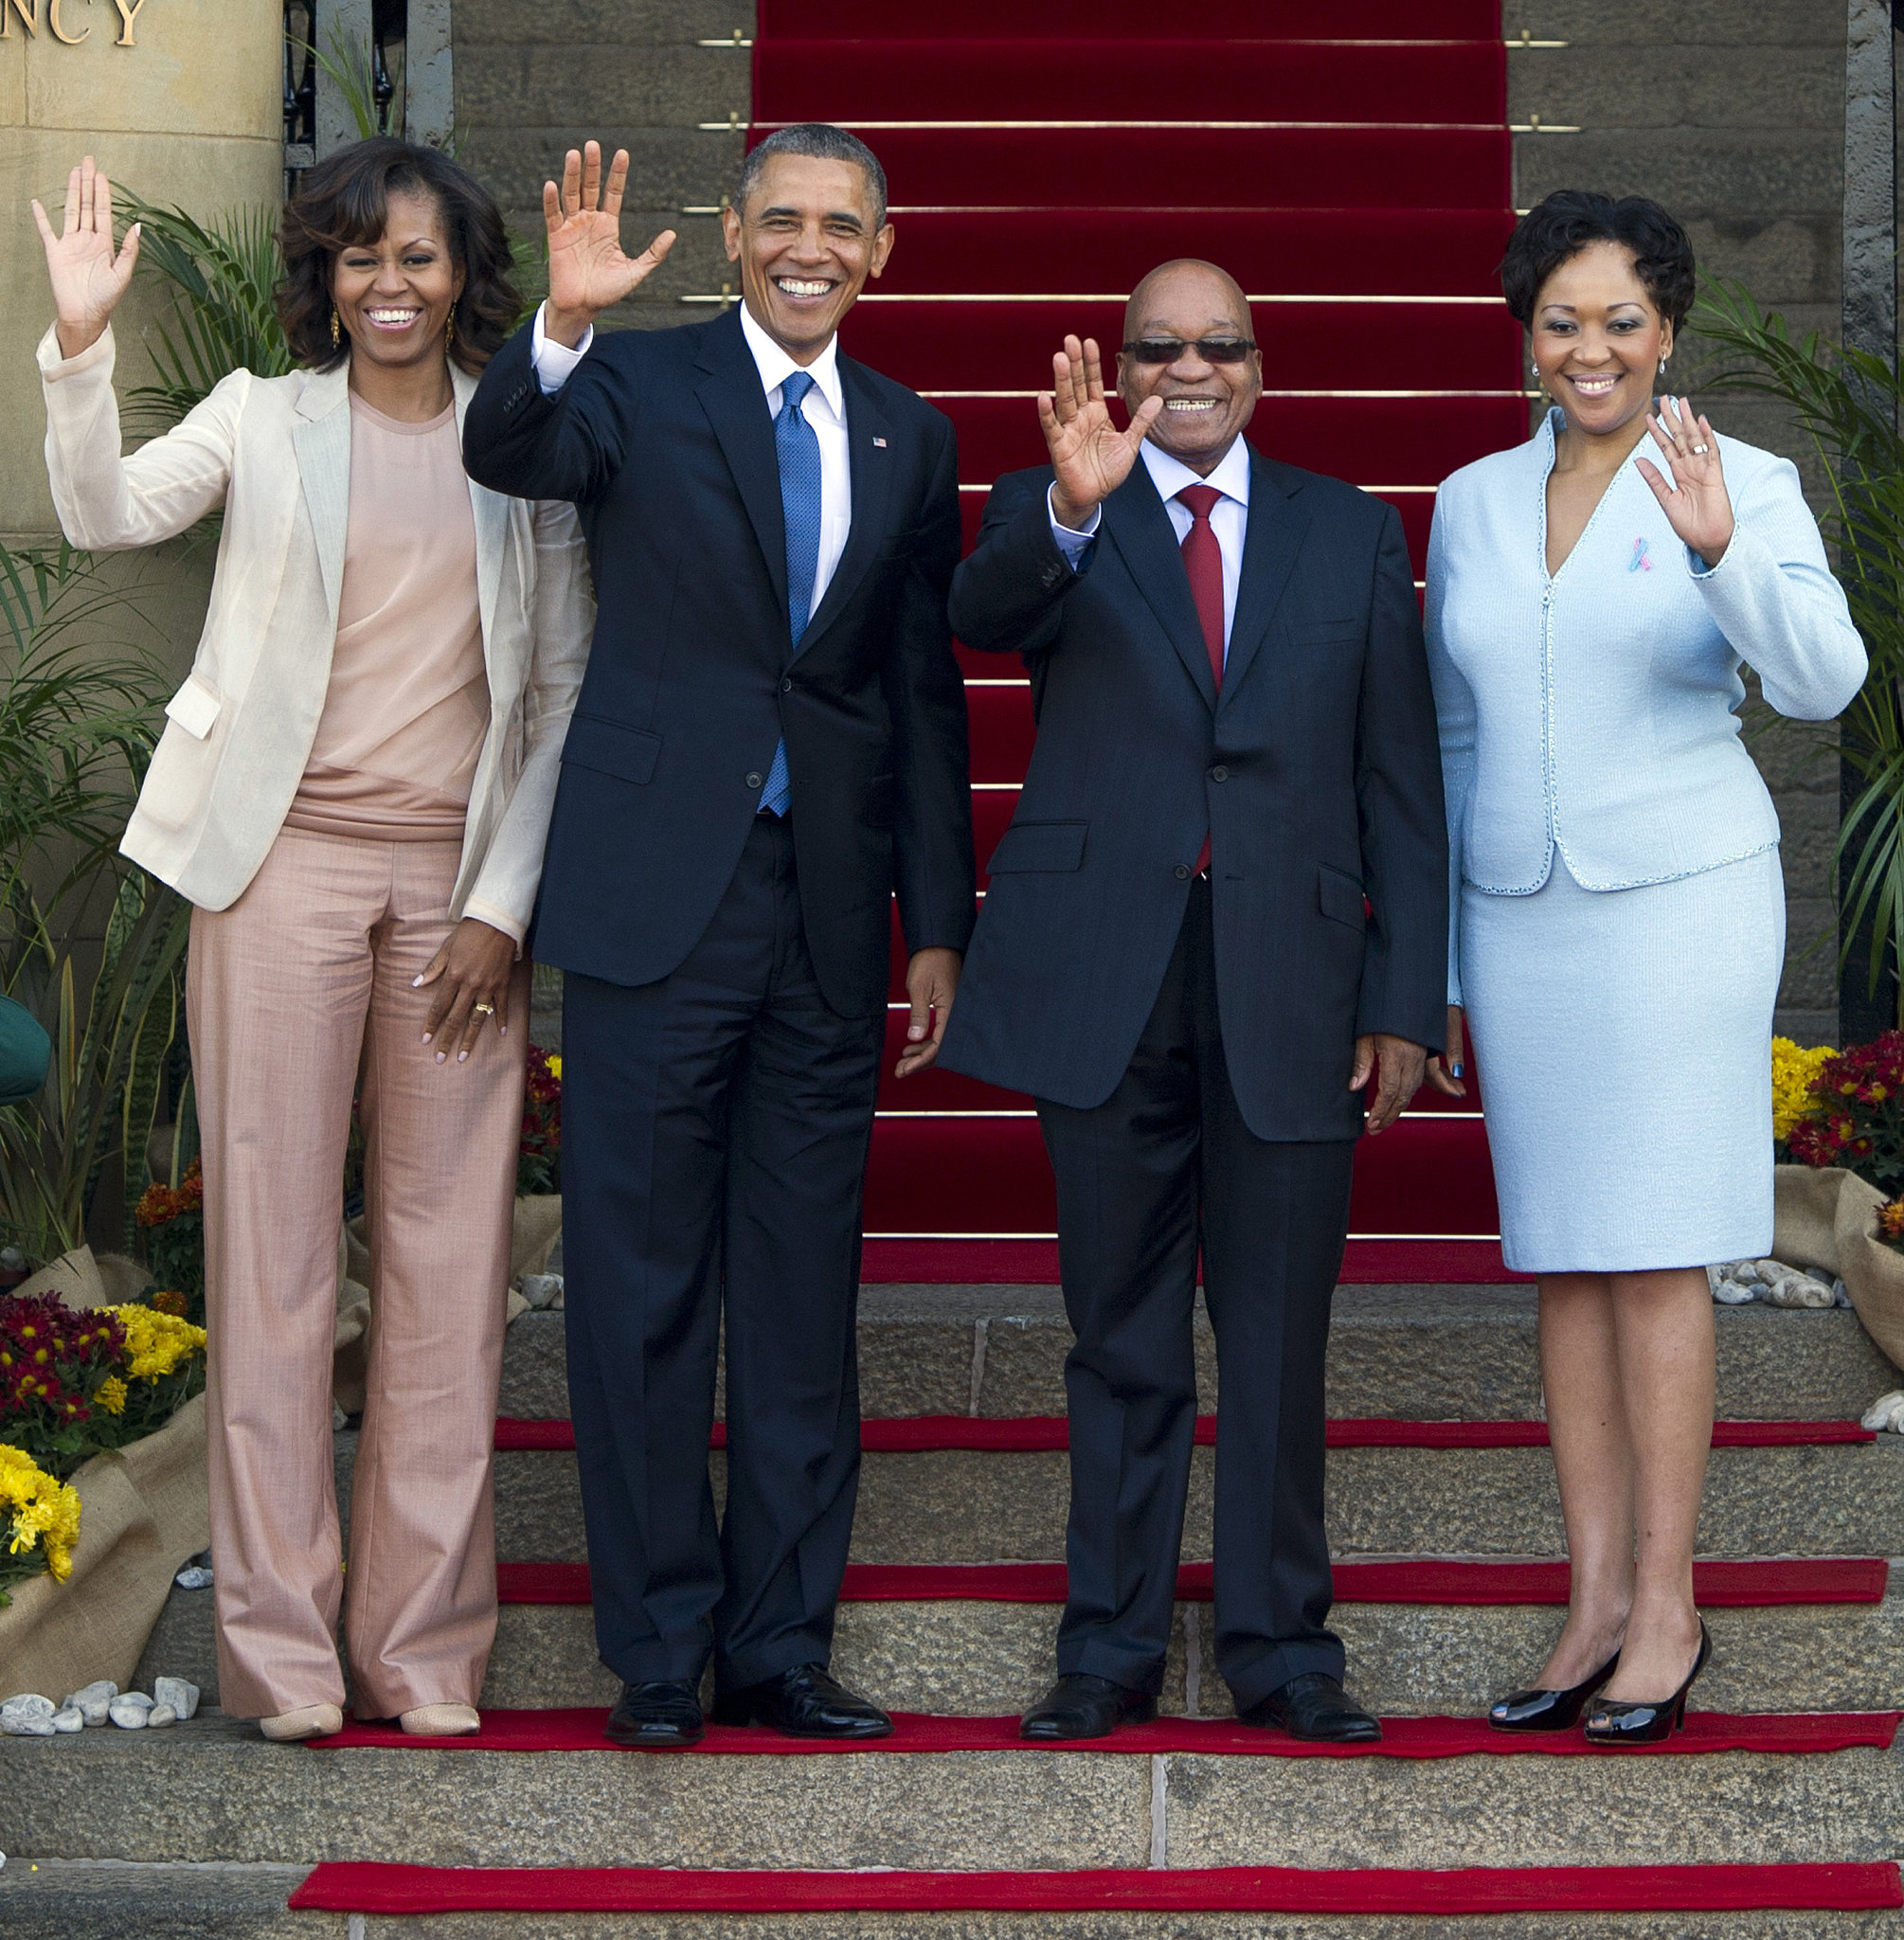 The first lady tried out a more relaxed silhouette as she and President Obama stood alongside South African President Jacob Zuma and his wife Thobeka Madiba-Zuma.